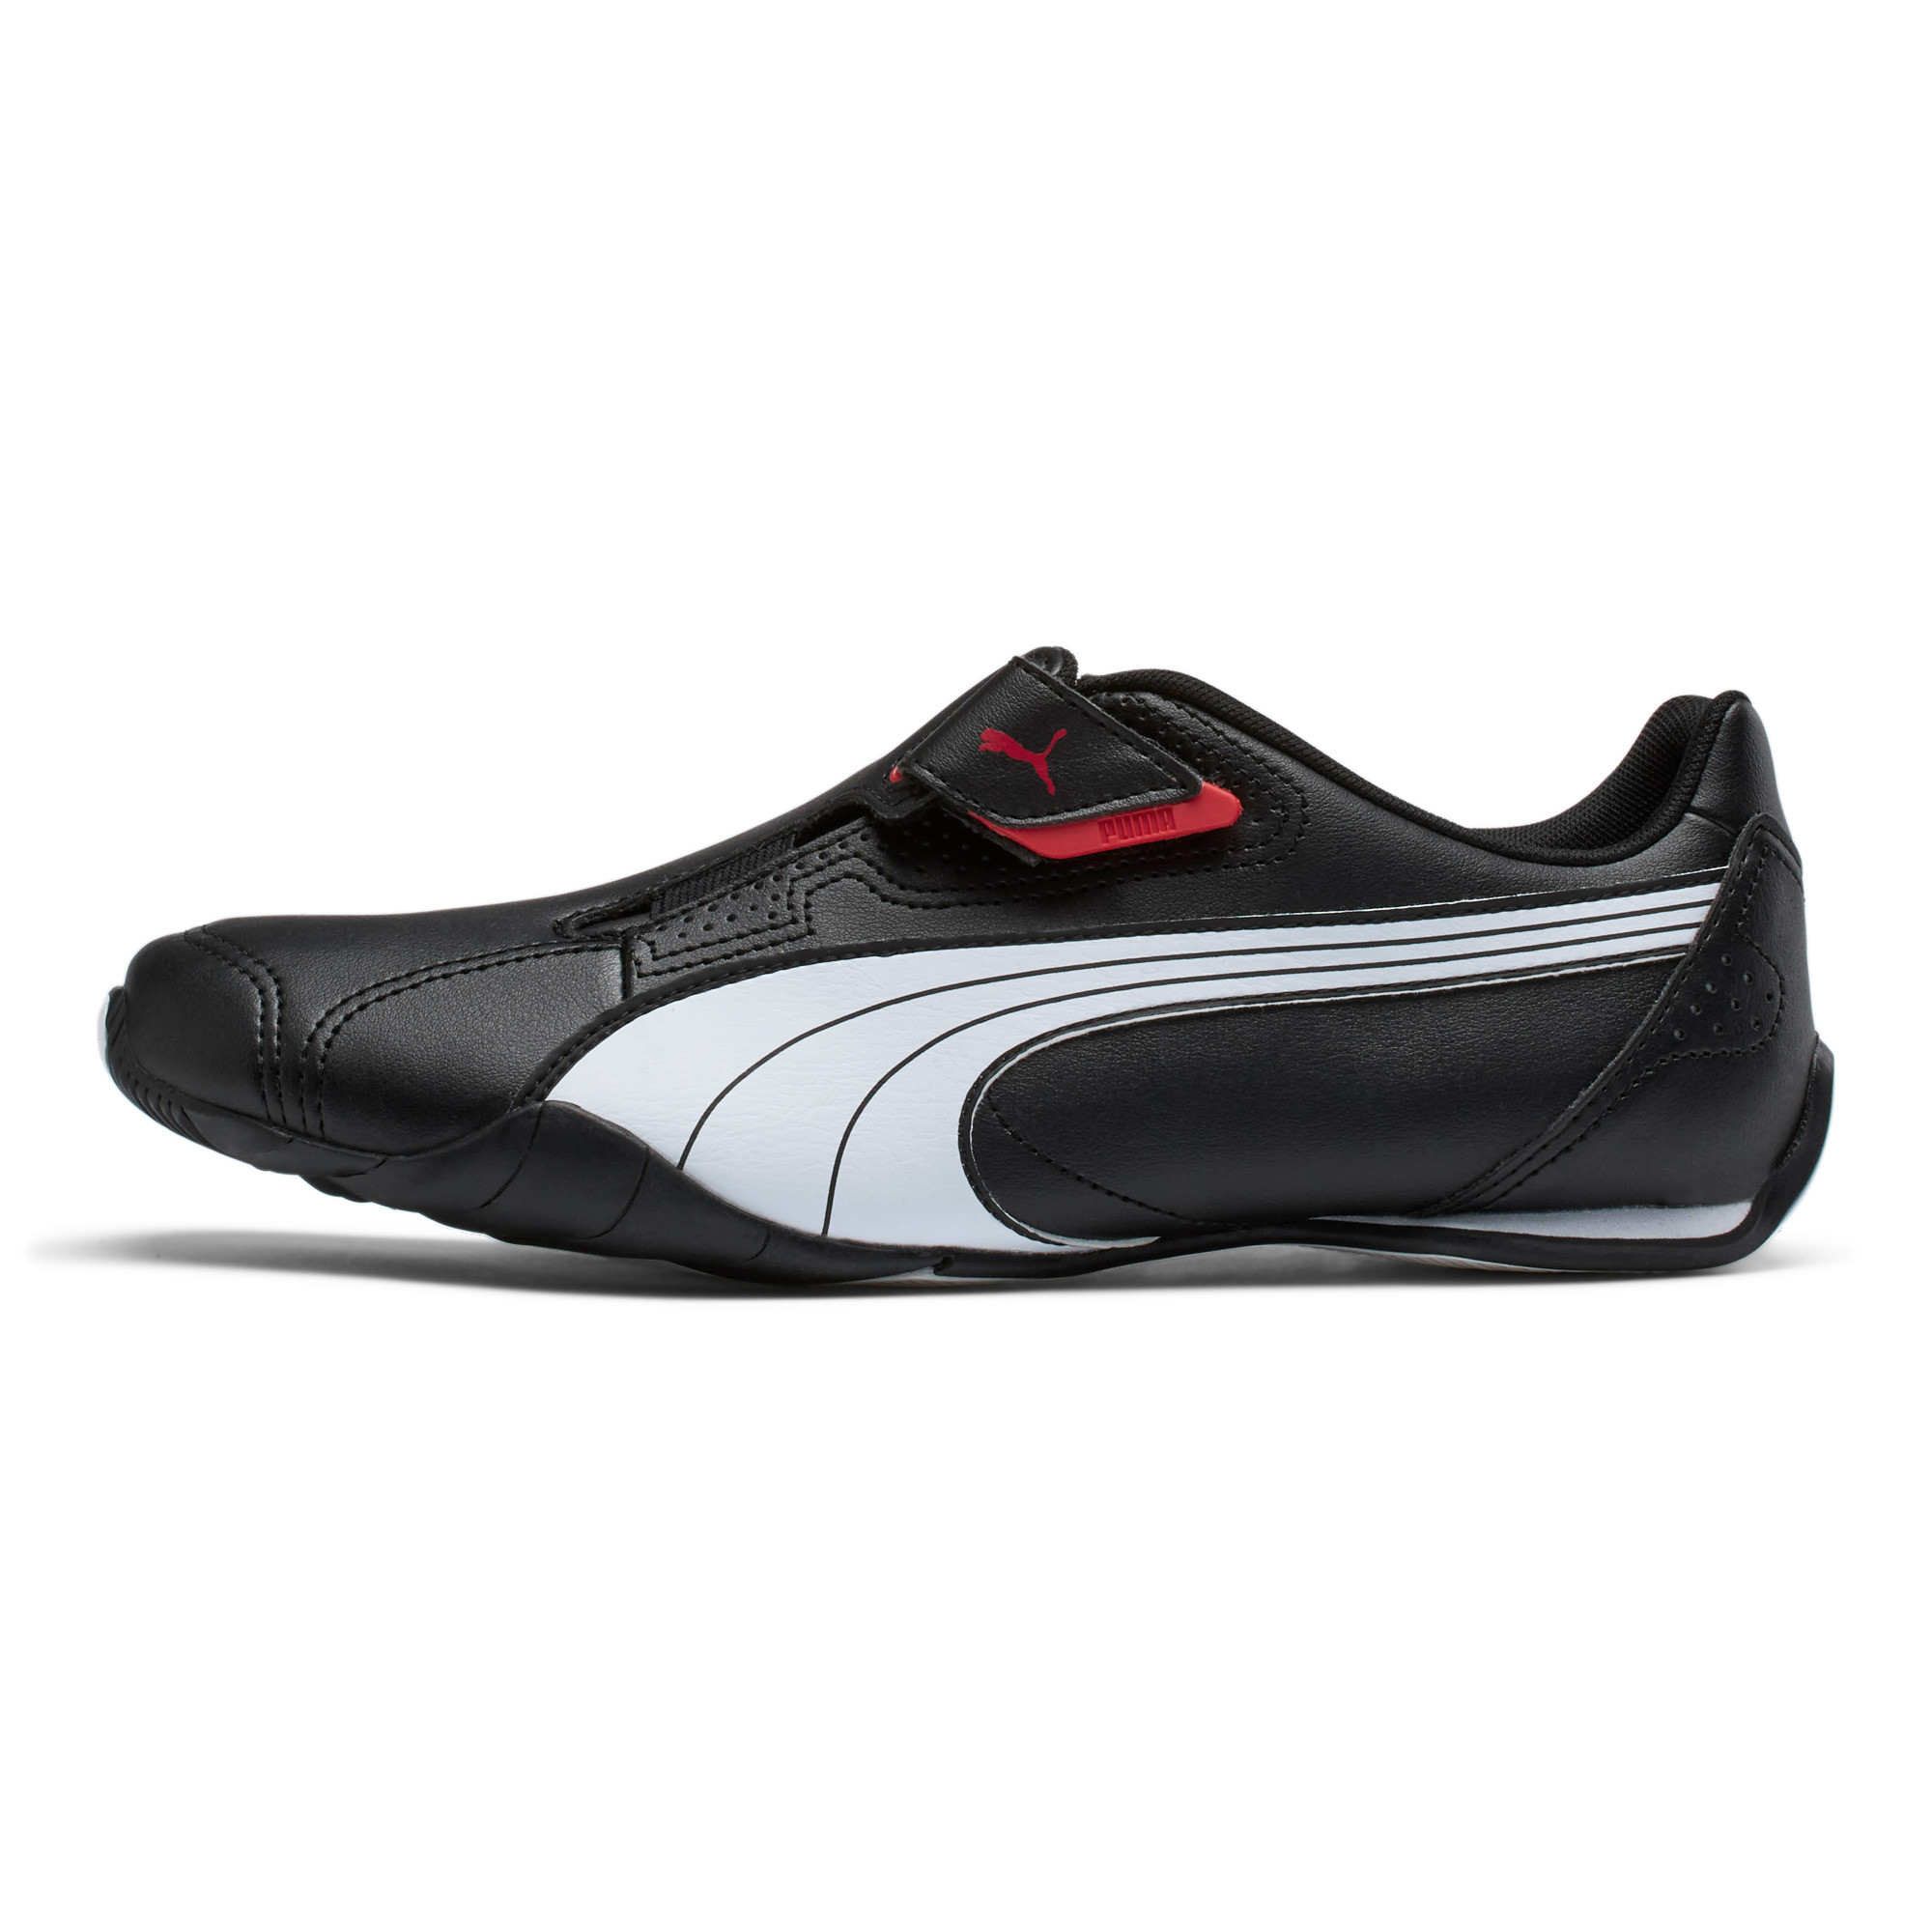 PUMA-Redon-Move-Shoes-Men-Shoe-Sport-Shoe thumbnail 4